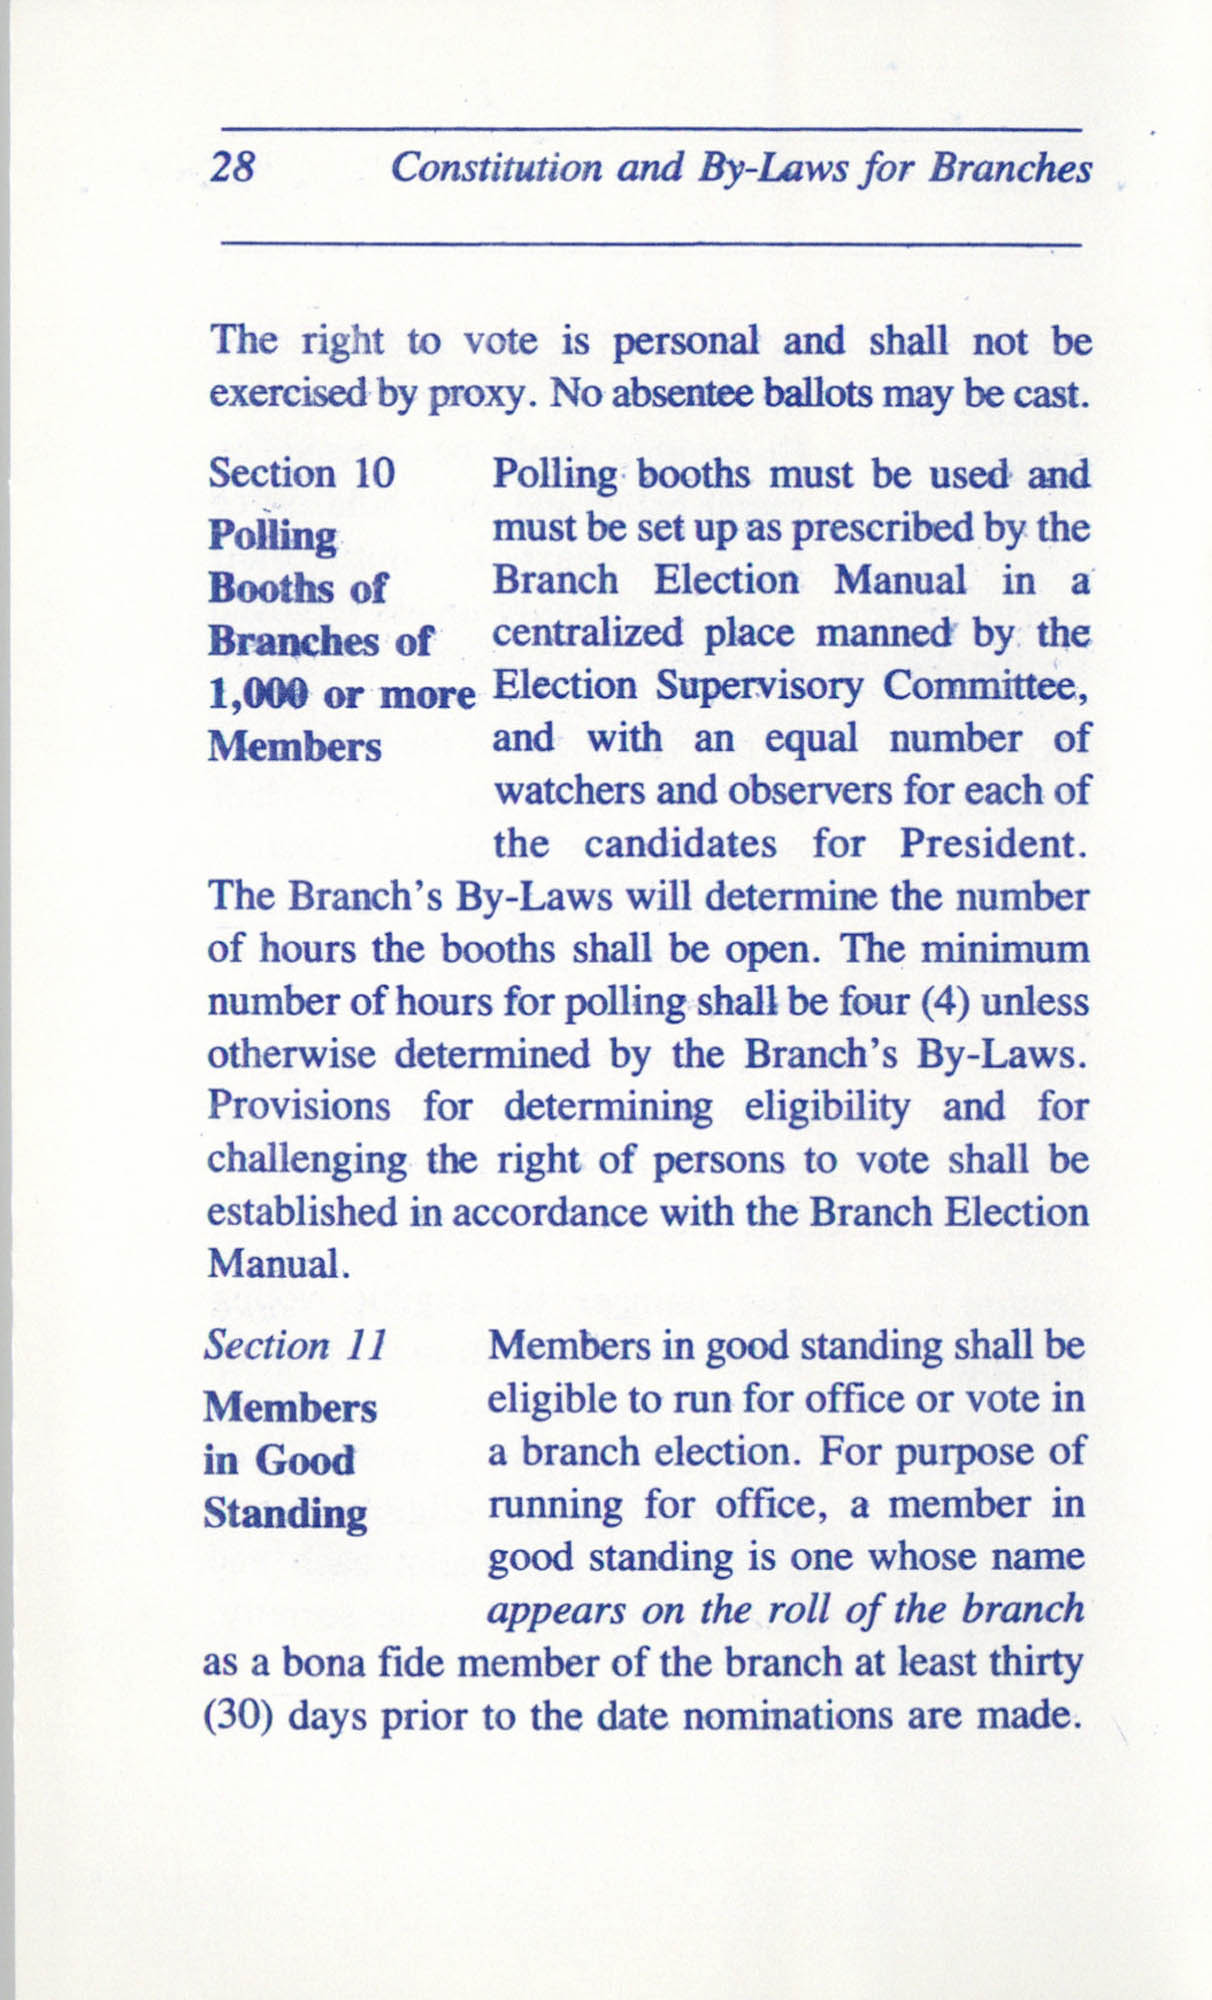 Constitution and By-Laws for Branches of the NAACP, June 1993, Page 28